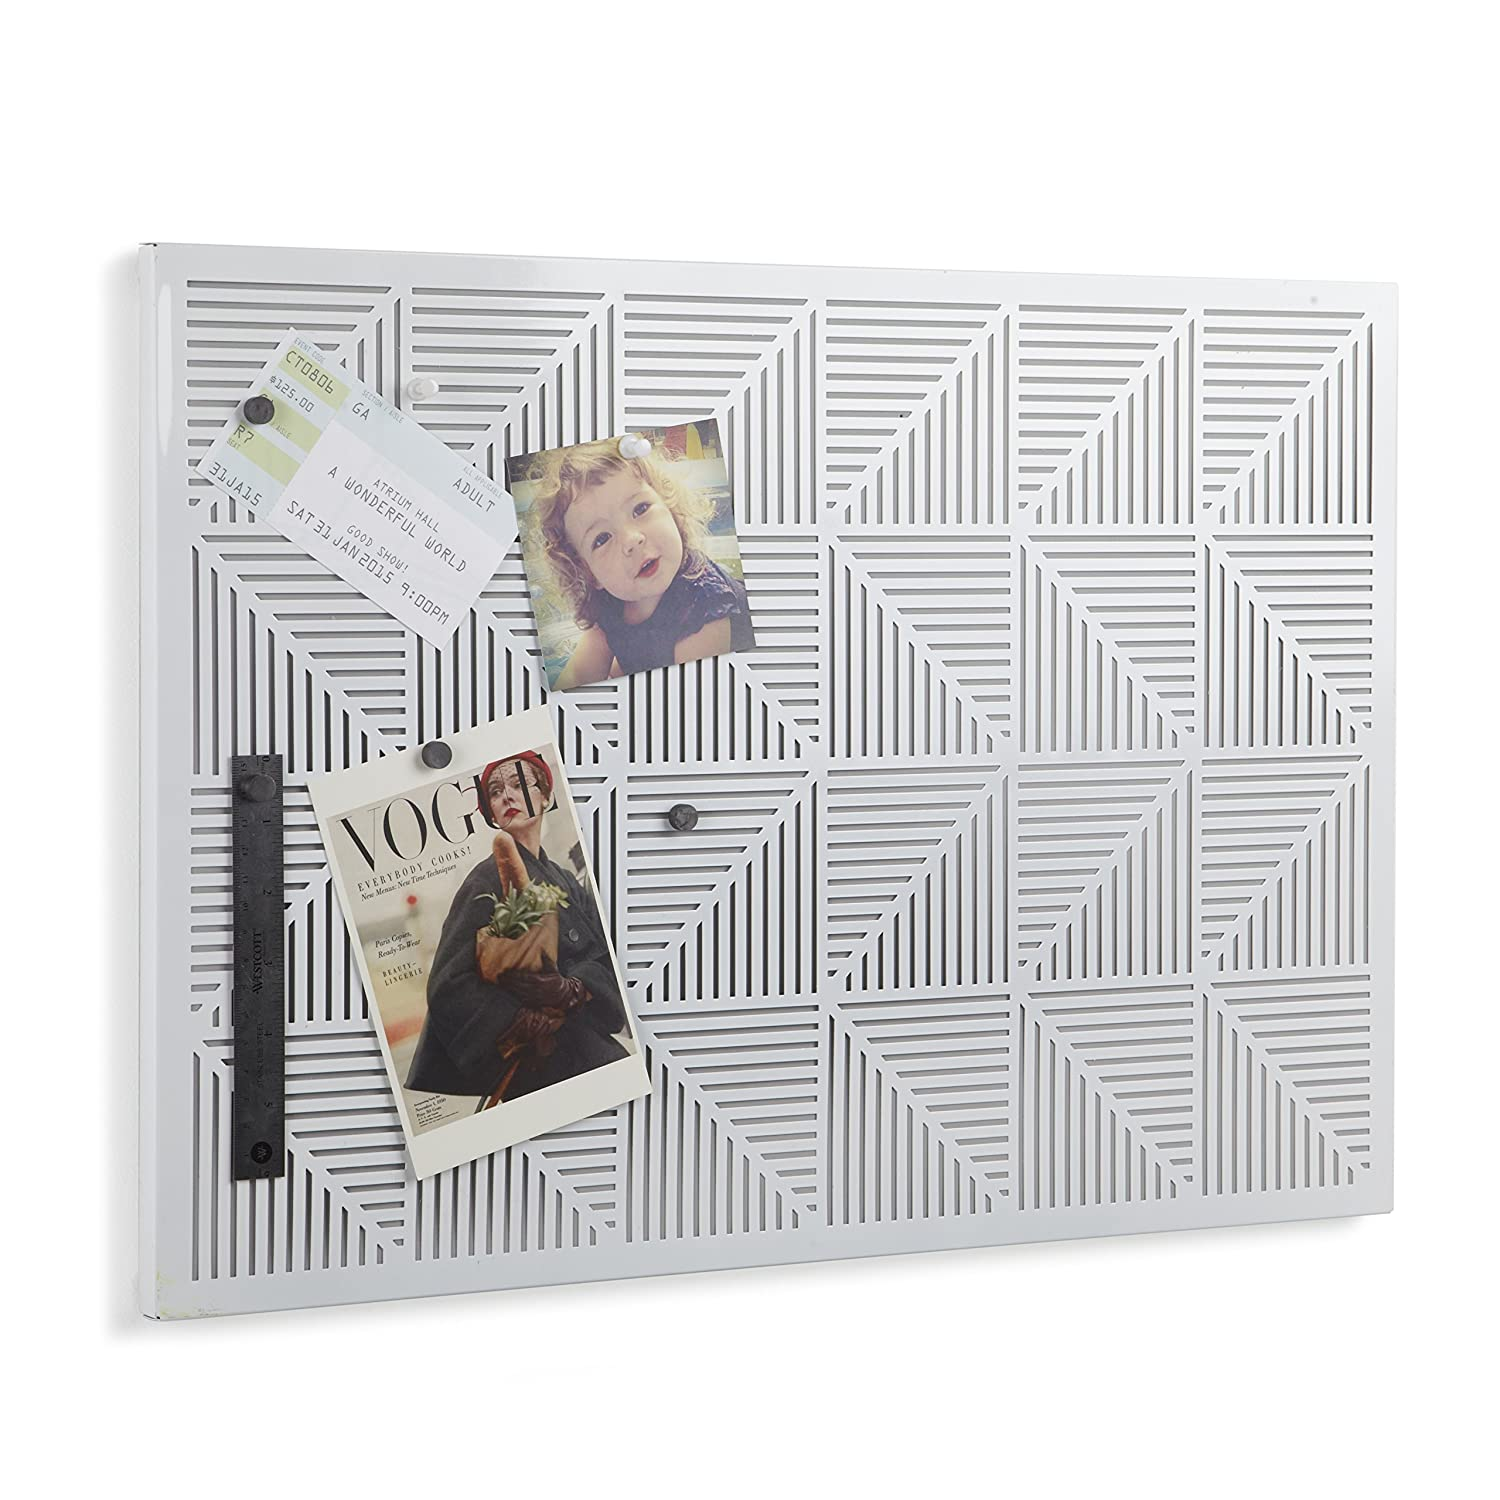 Bulletin Boards | Amazon.com | Office & School Supplies - Education ...